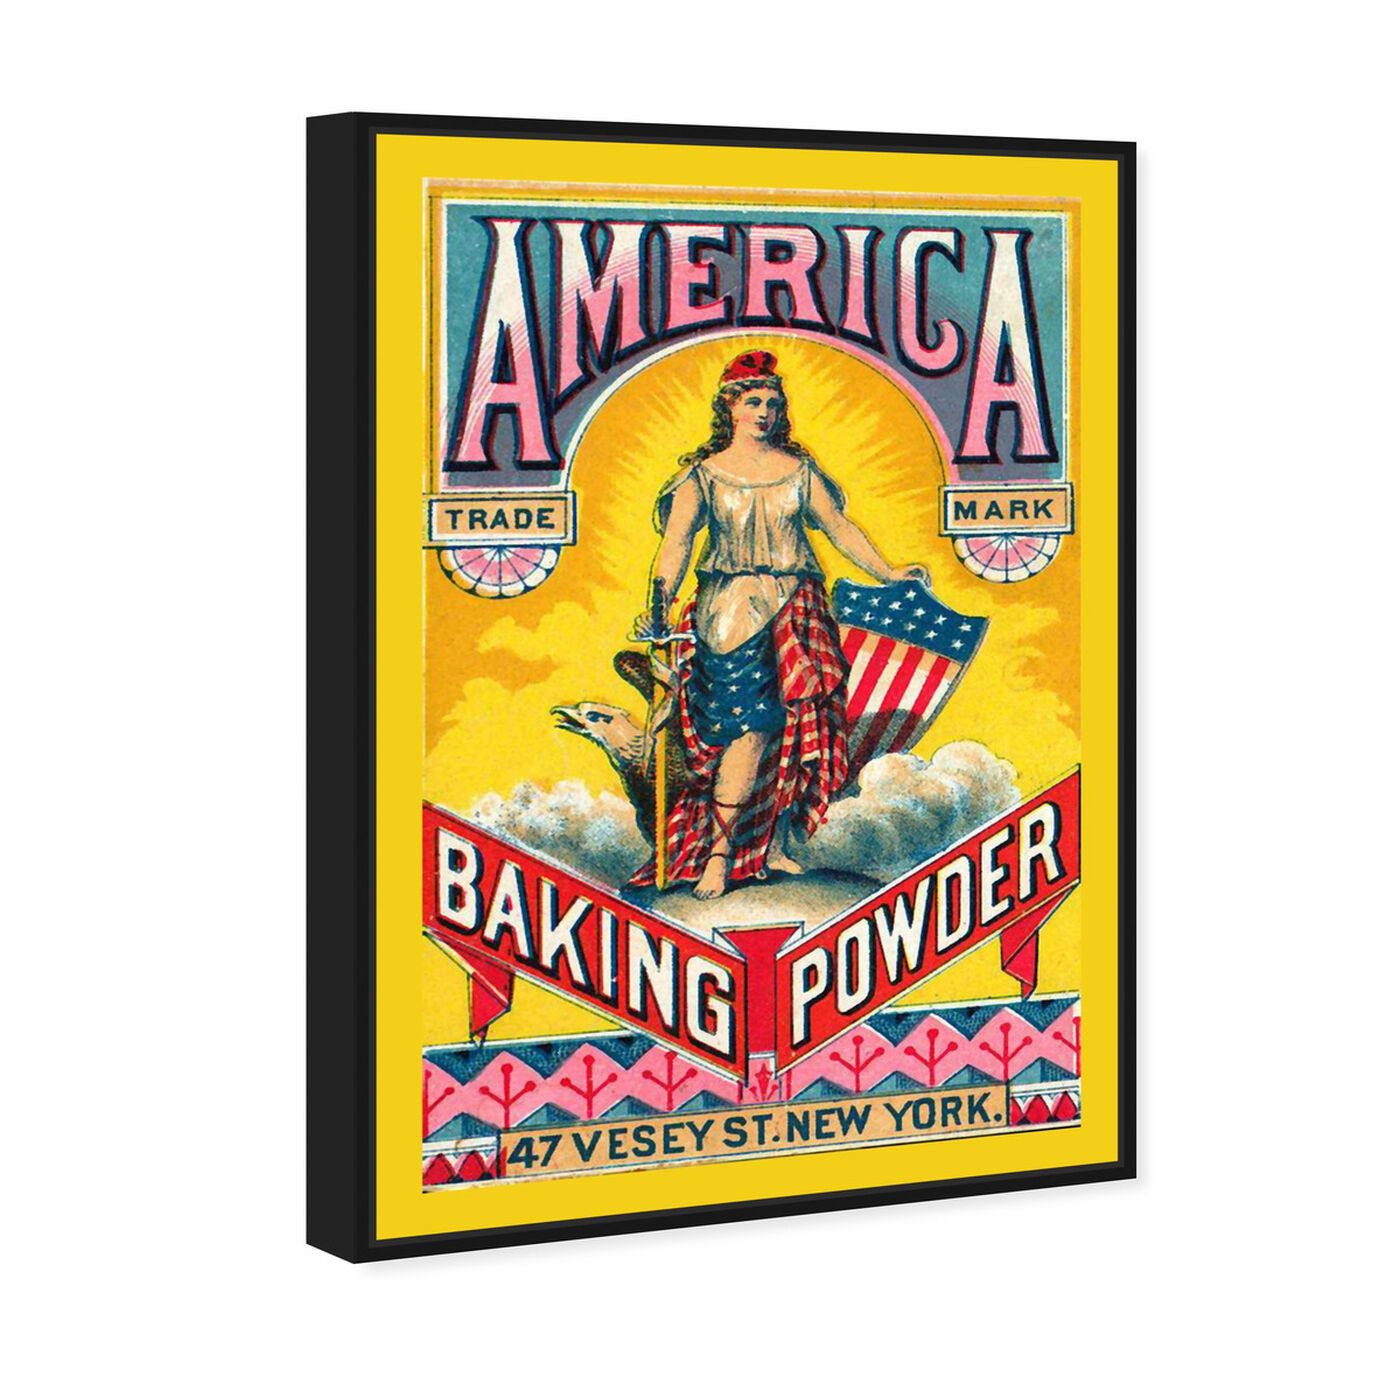 Angled view of America Baking Powder featuring advertising and promotional brands art.